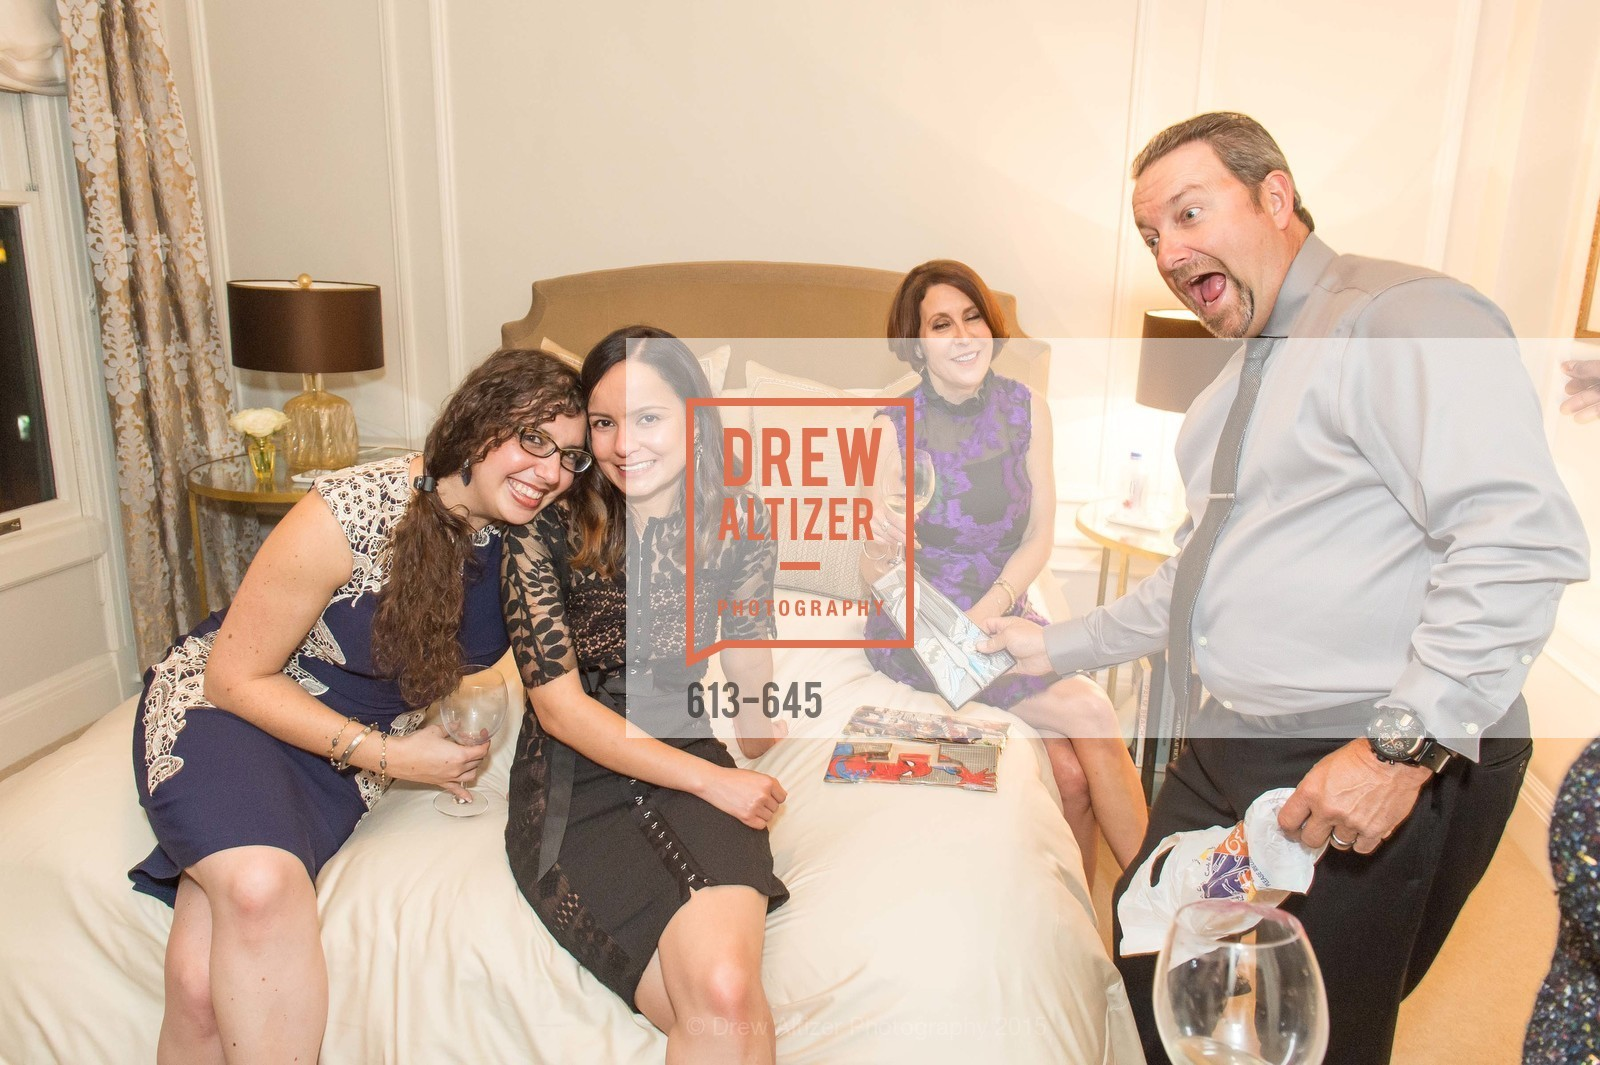 Shanna Atherton, Sargam Athetrton, Susan Atherton, Donny Atherton, Atherton Holiday Party, Private Residence, December 12th, 2015,Drew Altizer, Drew Altizer Photography, full-service agency, private events, San Francisco photographer, photographer california